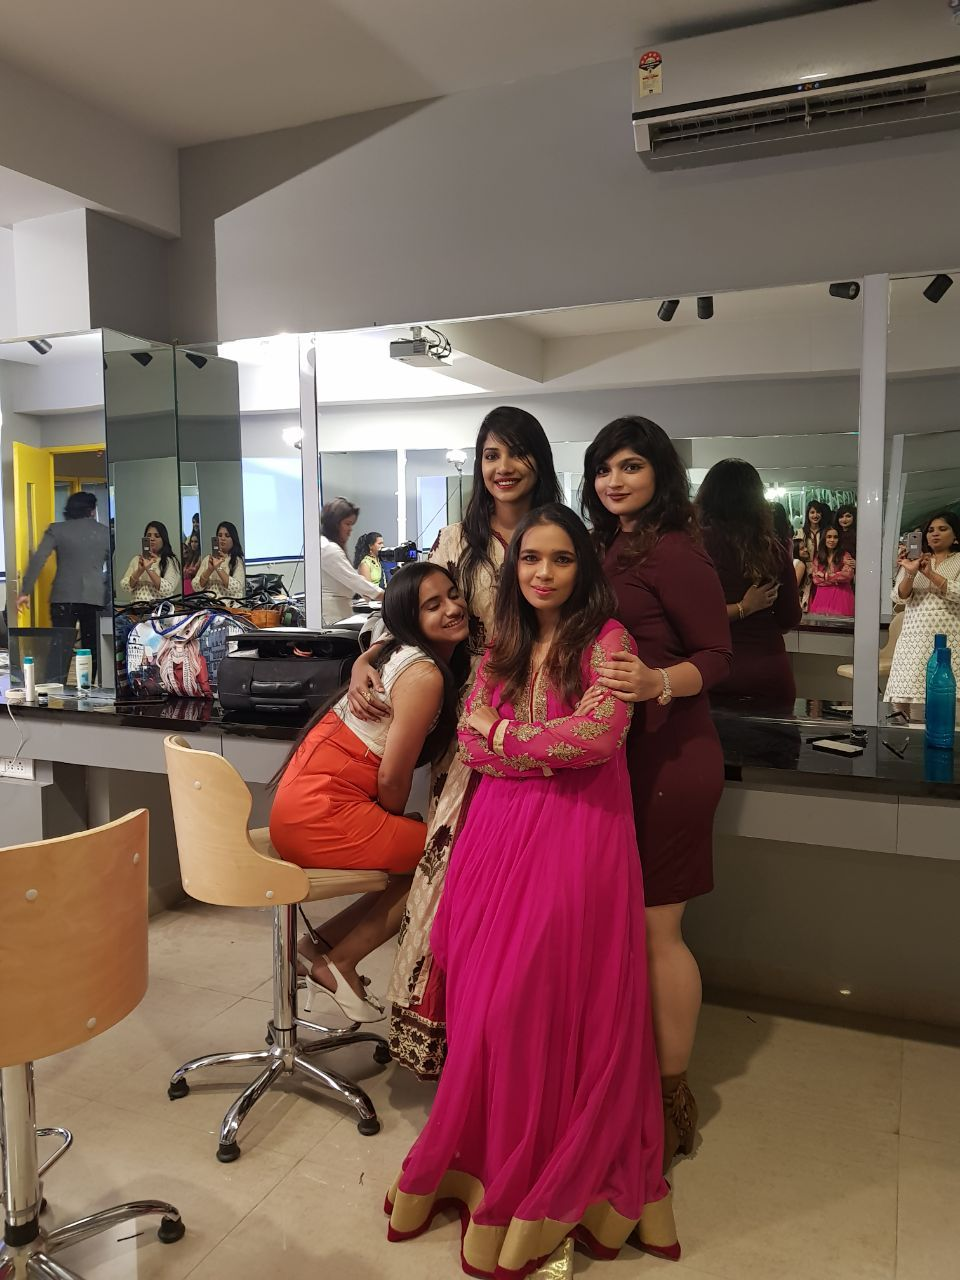 Bridal makeup courses in Hyderabad #Celebrity Makeup Artist Courses